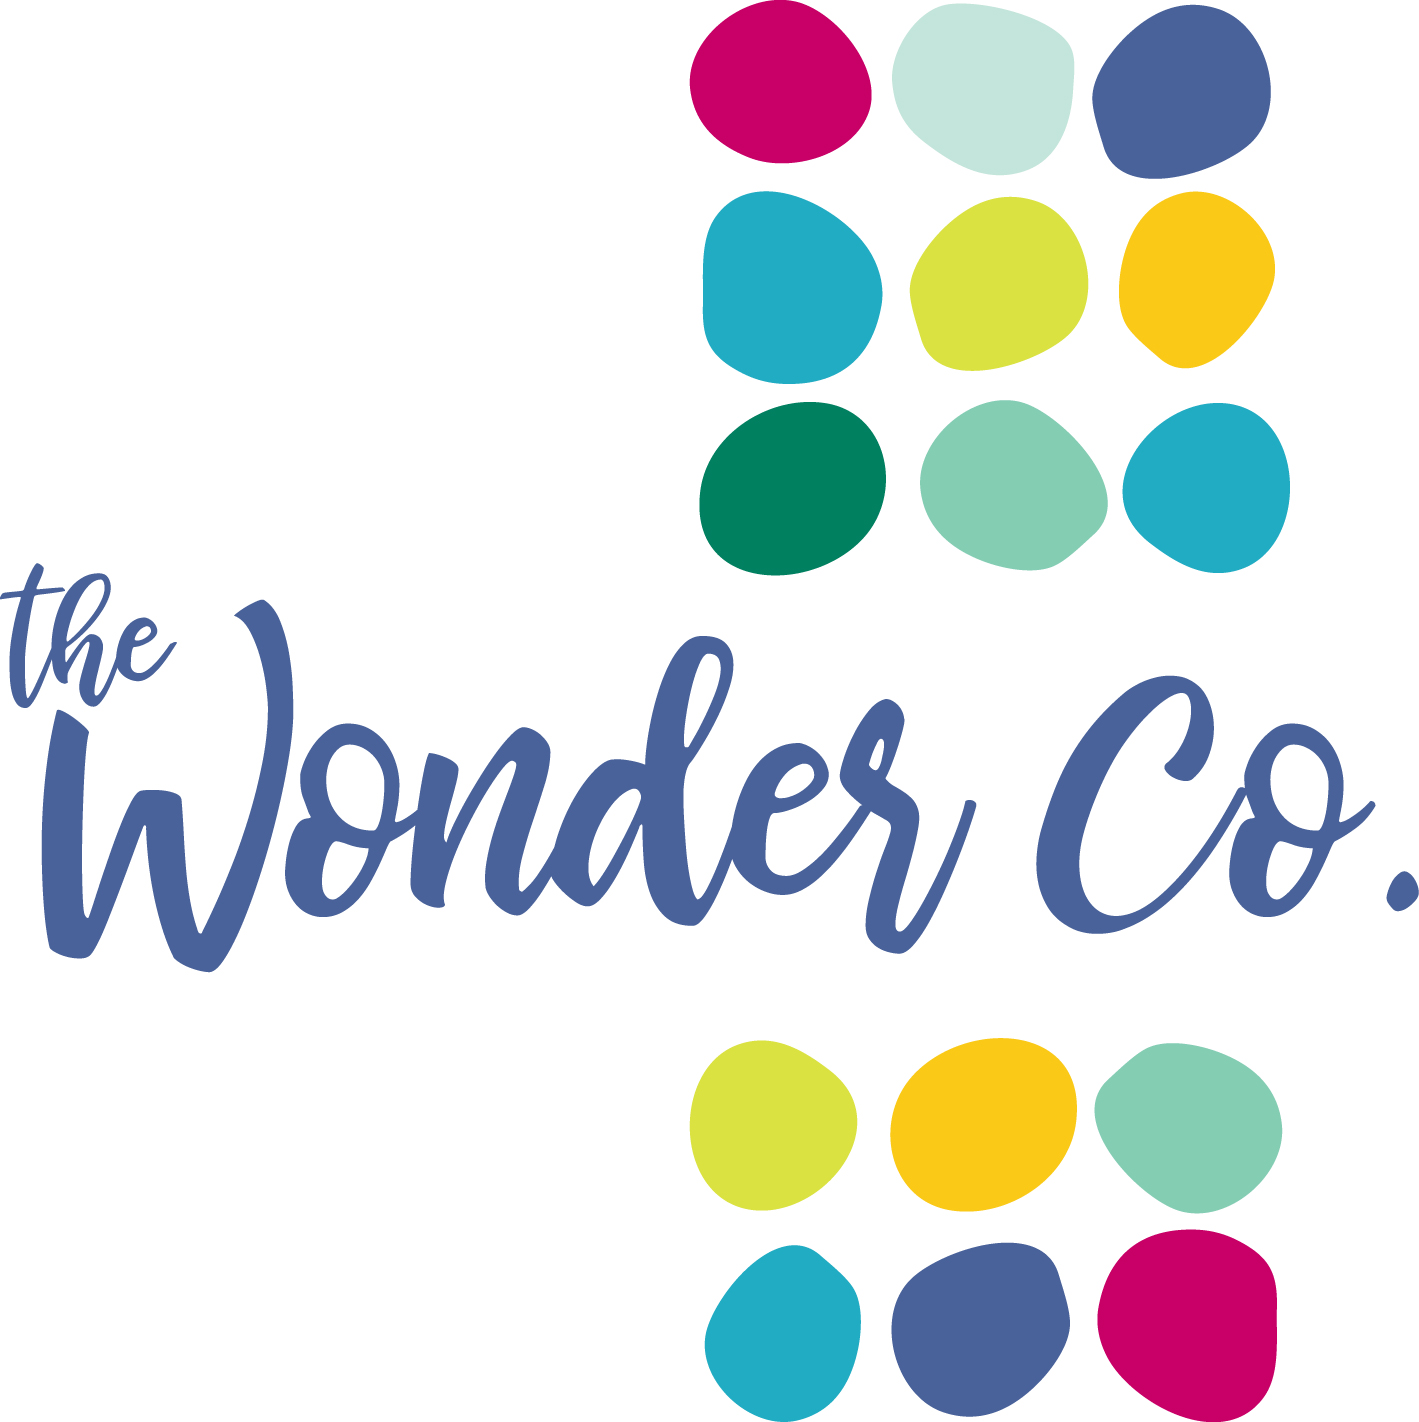 The Wonder Co.